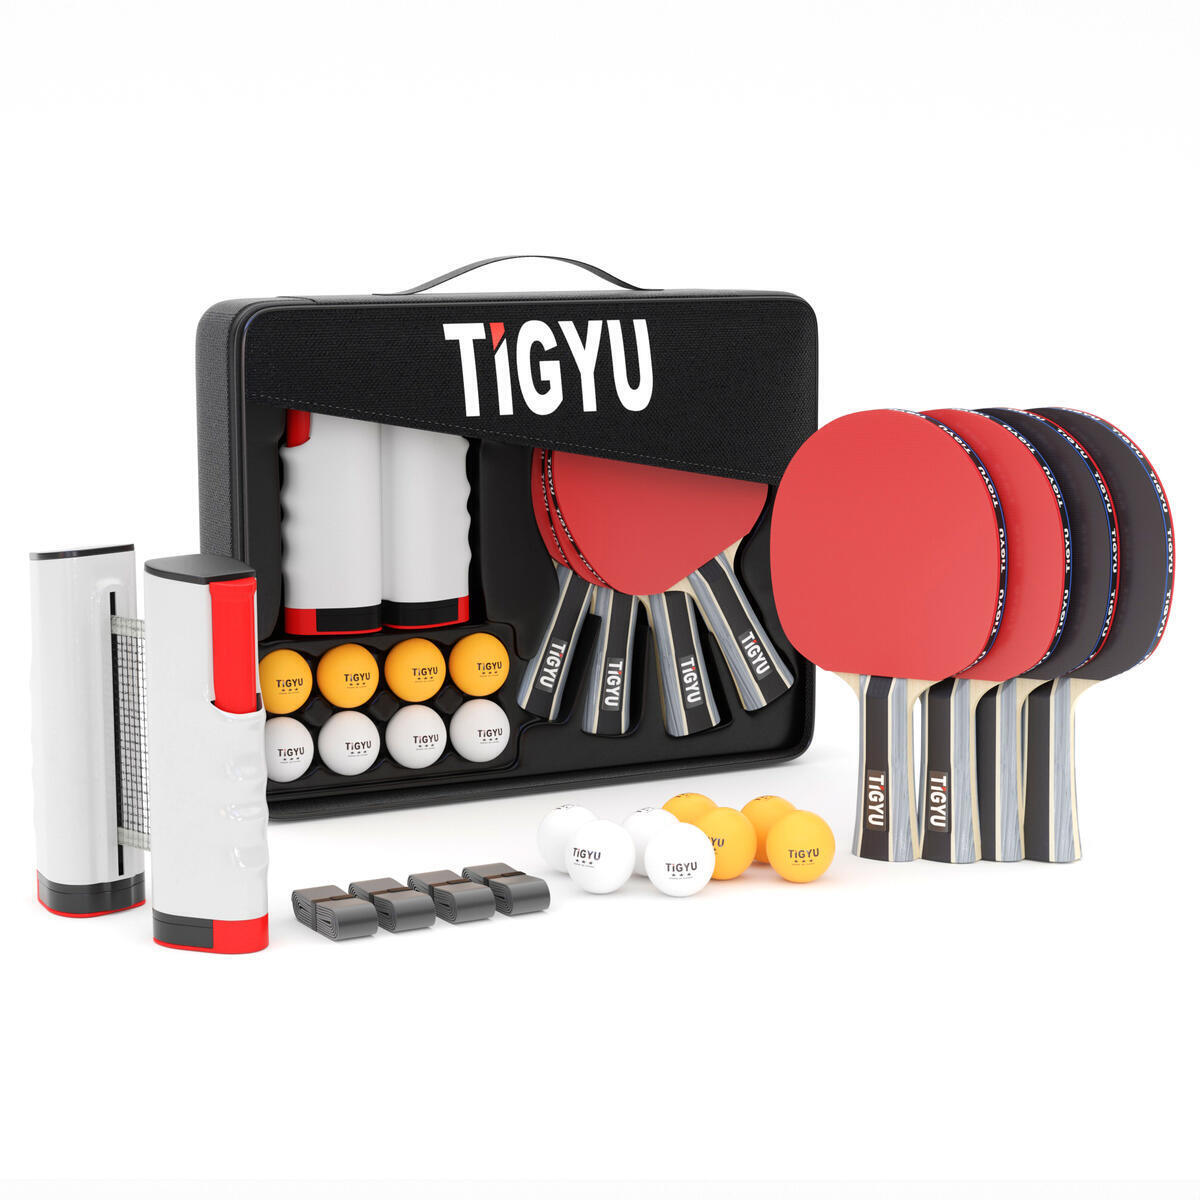 Tigyu Portable Ping Pong Set With Storage Case